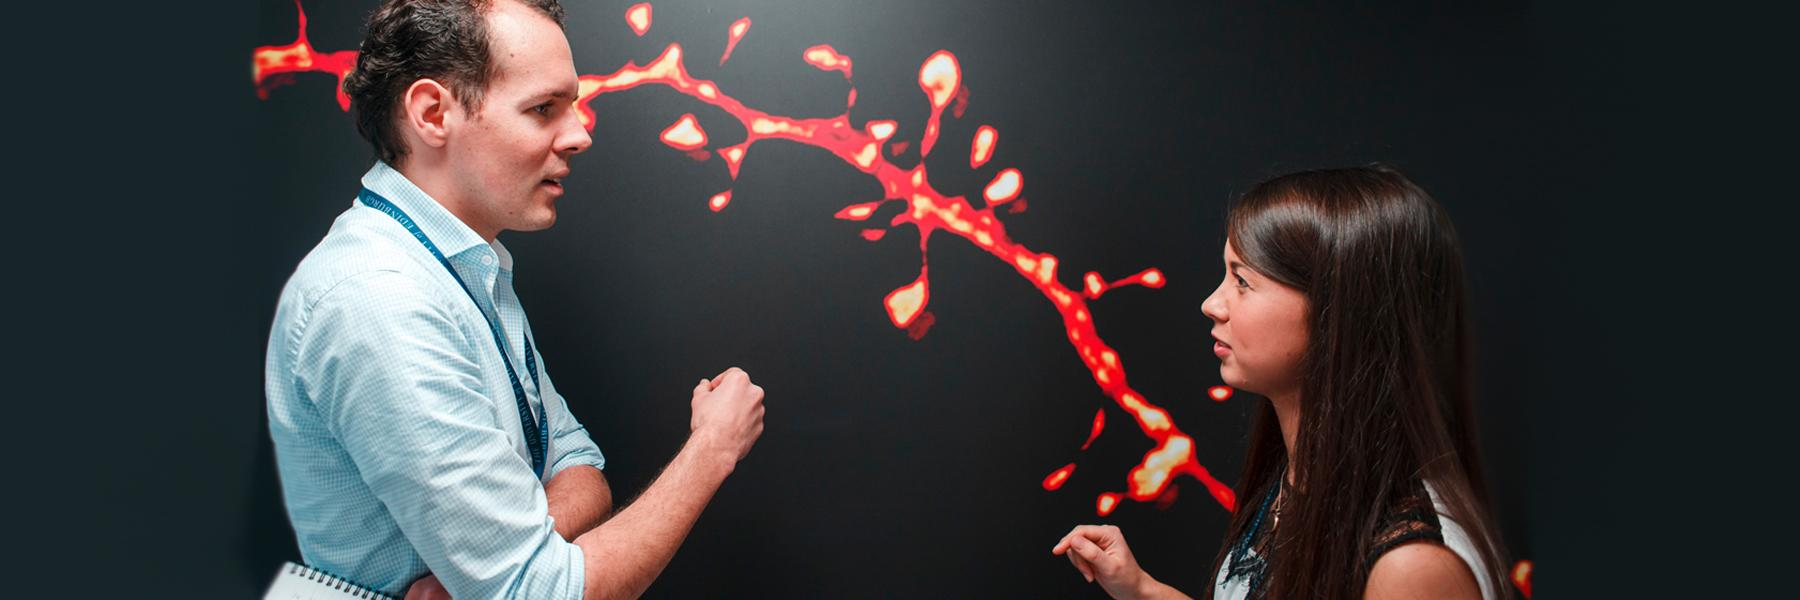 Two researchers talking in front of a neurological image